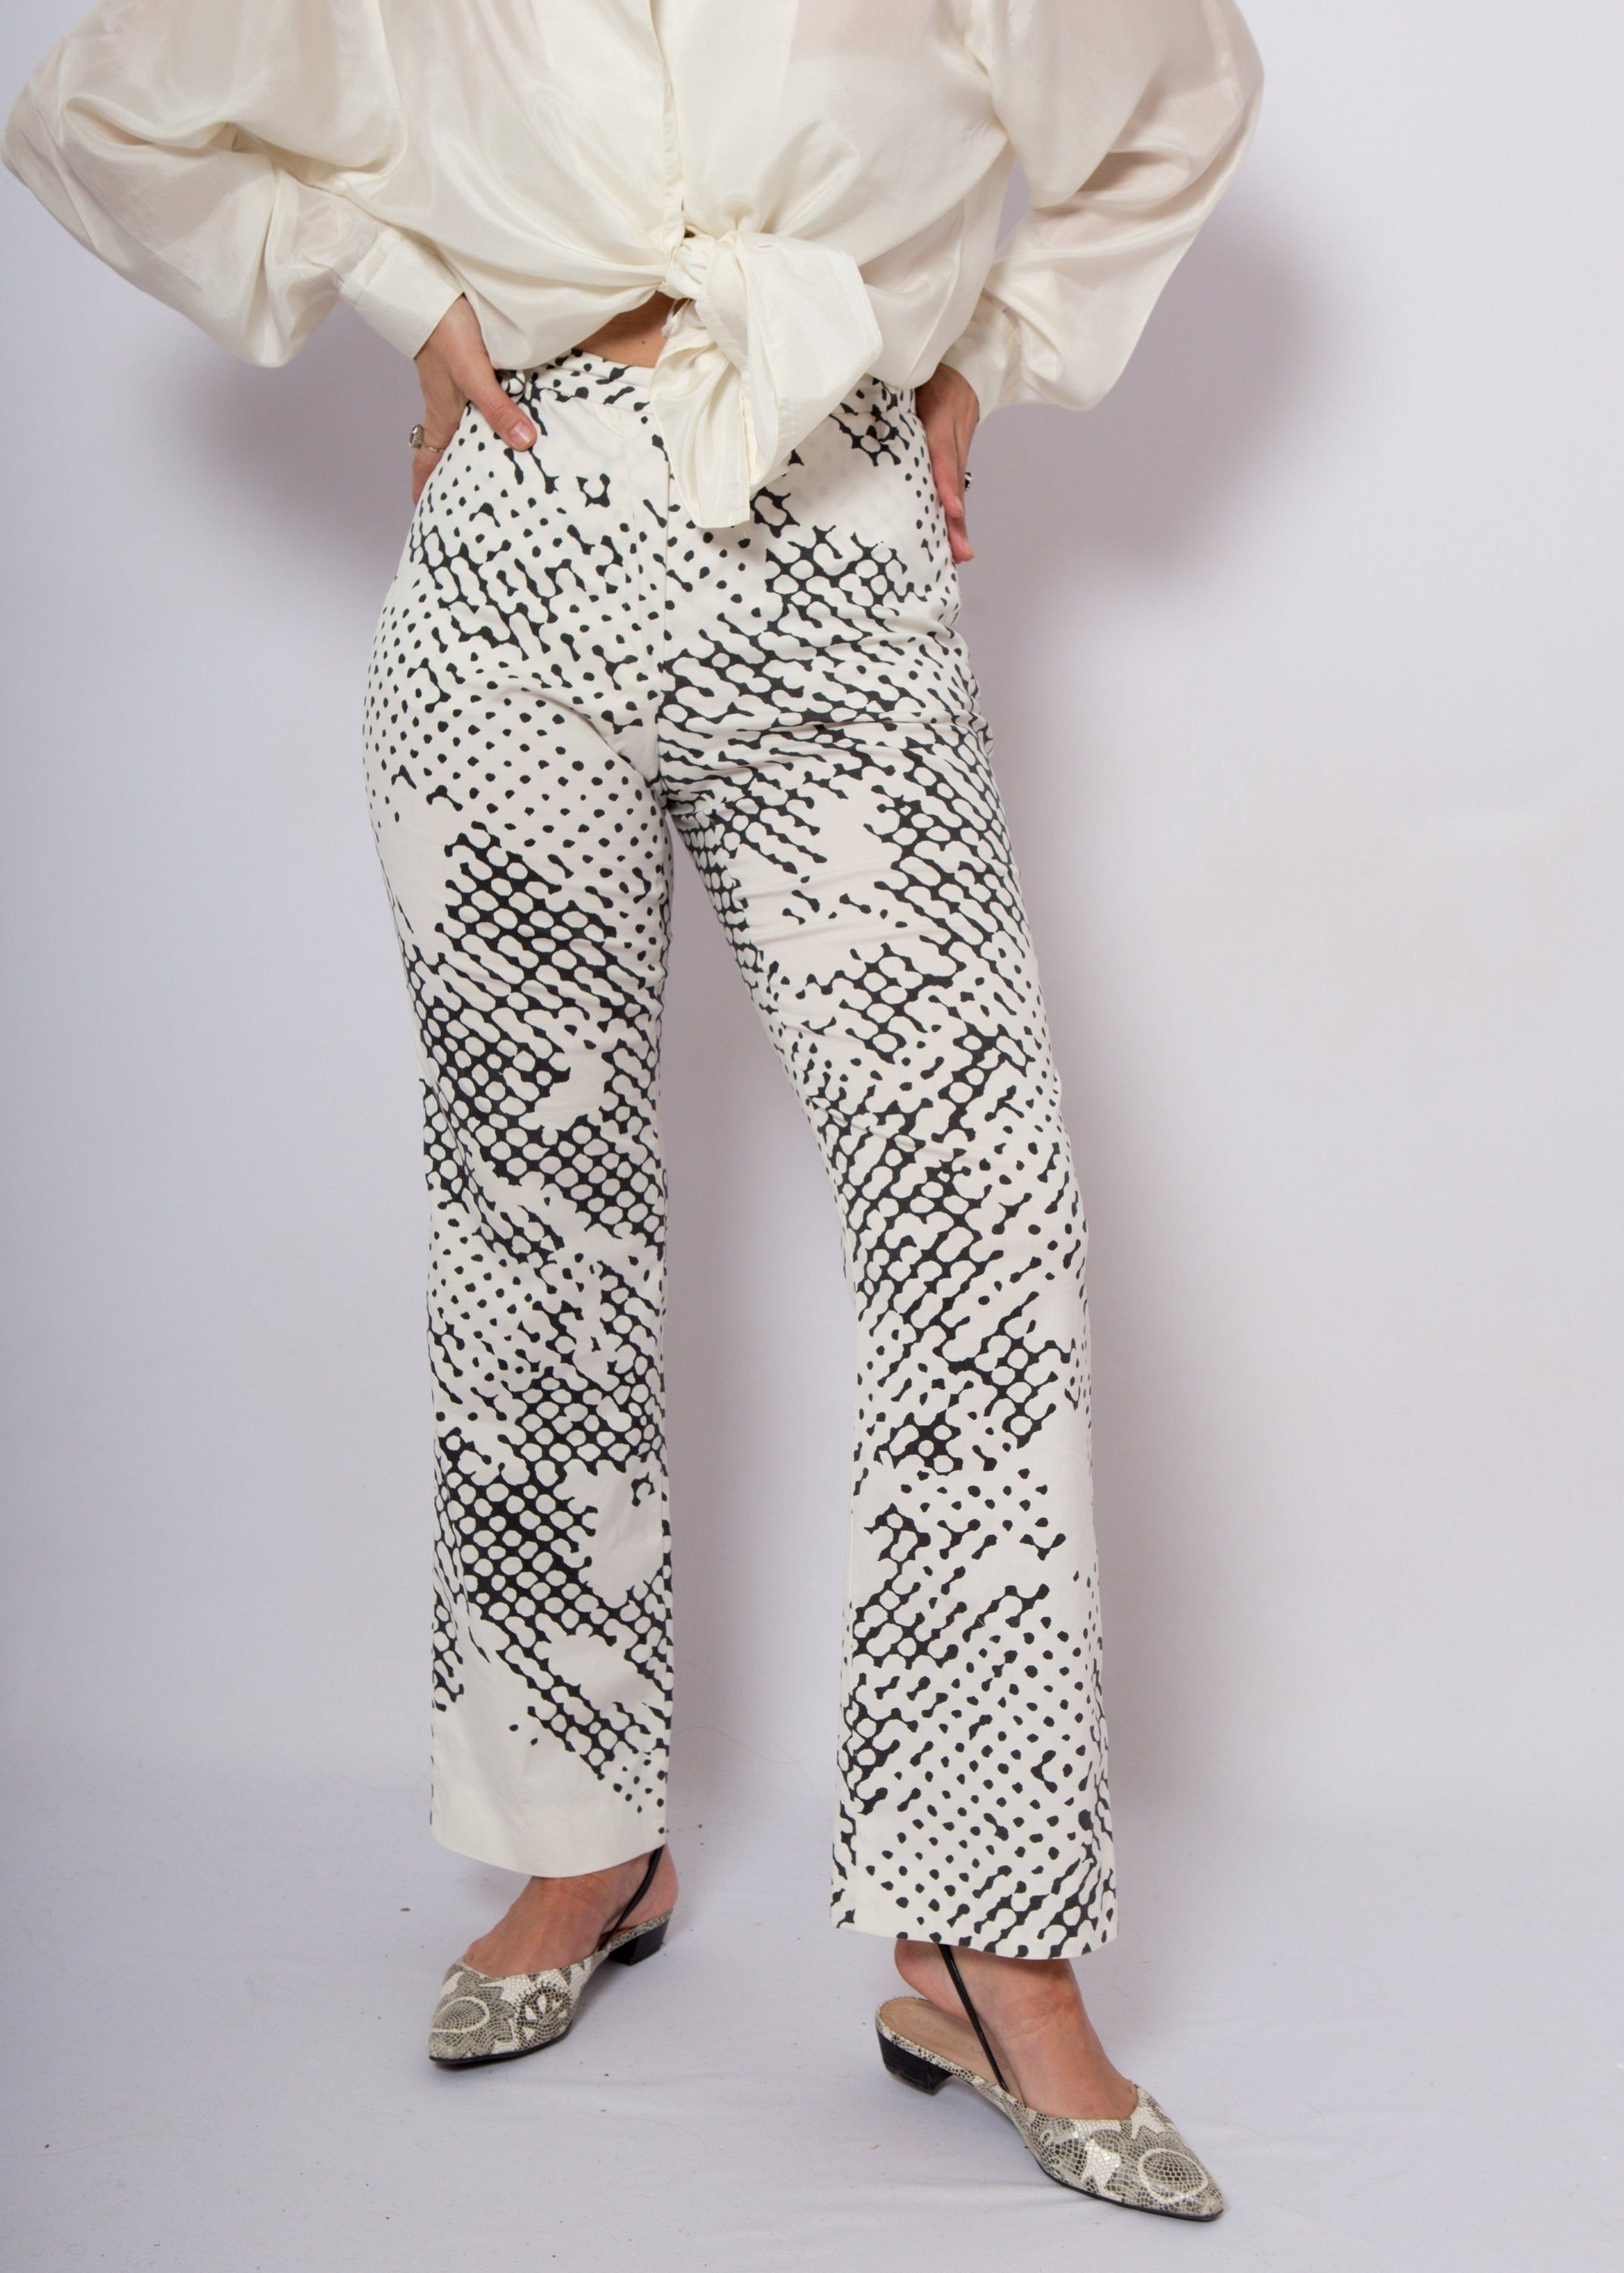 RESREVED for Sharla Rare JIL SANDER Snake Print Pants Abstract Trousers Bell Bottoms Made in Germany Medium Size W 27 L 31